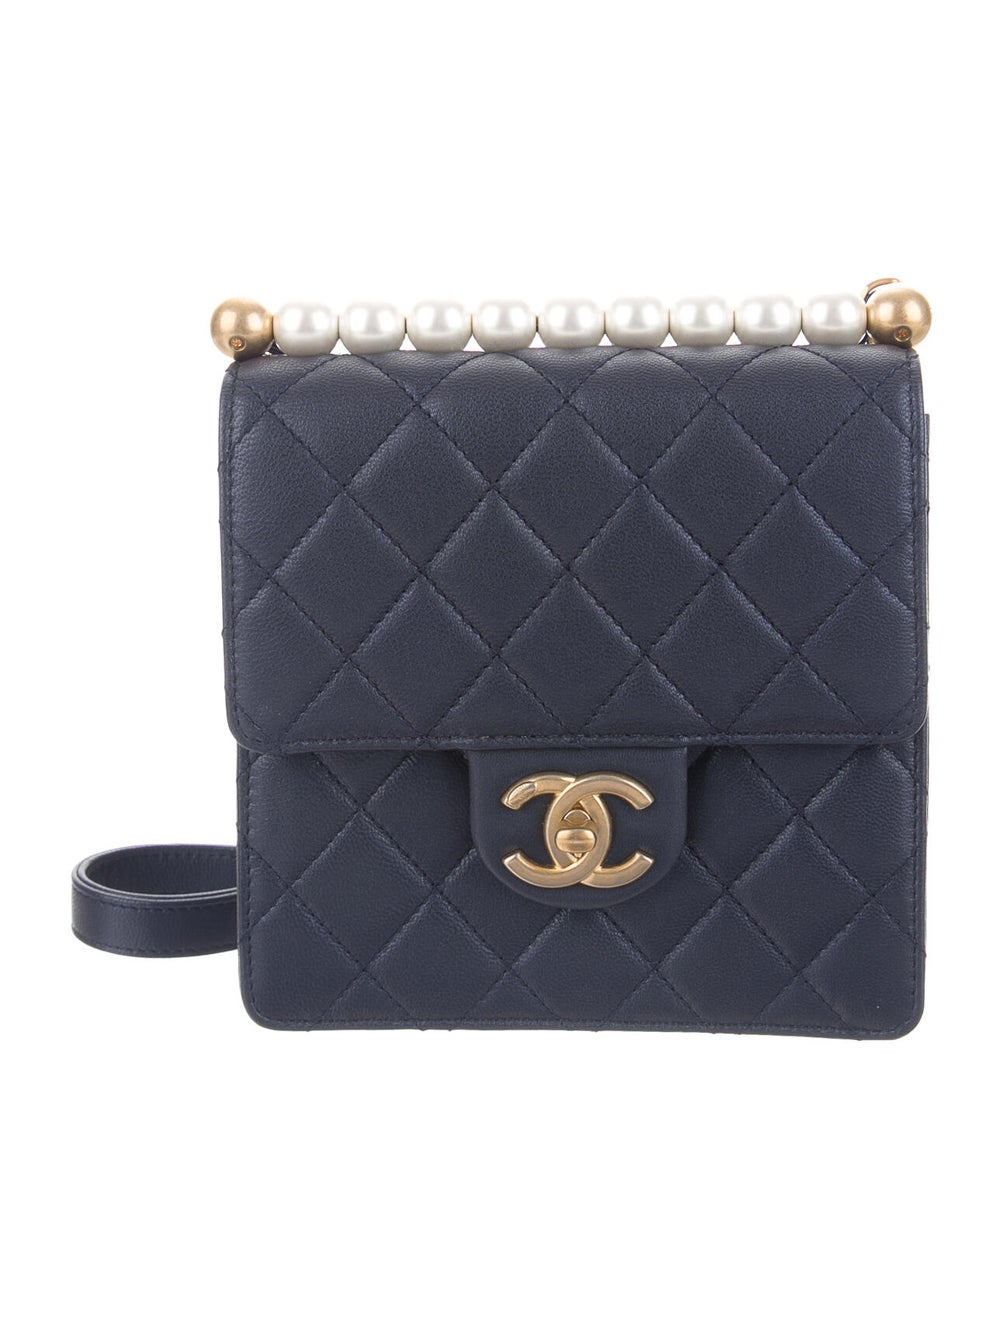 Chanel 2019 Small Chic Pearls Flap Bag Blue - image 1